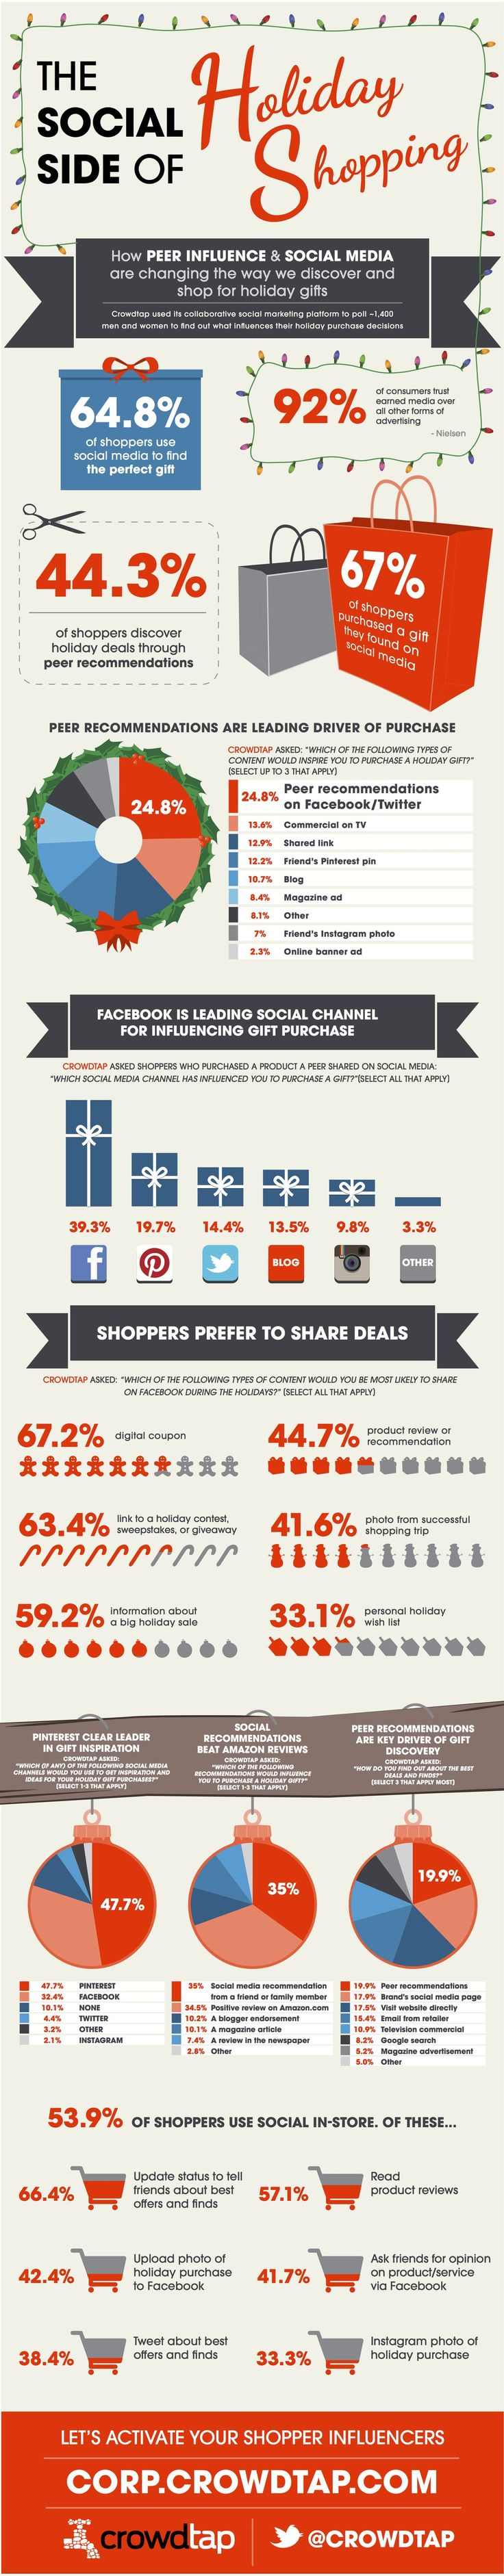 The Social Side of Holiday Shopping #Infographic #socialmedia